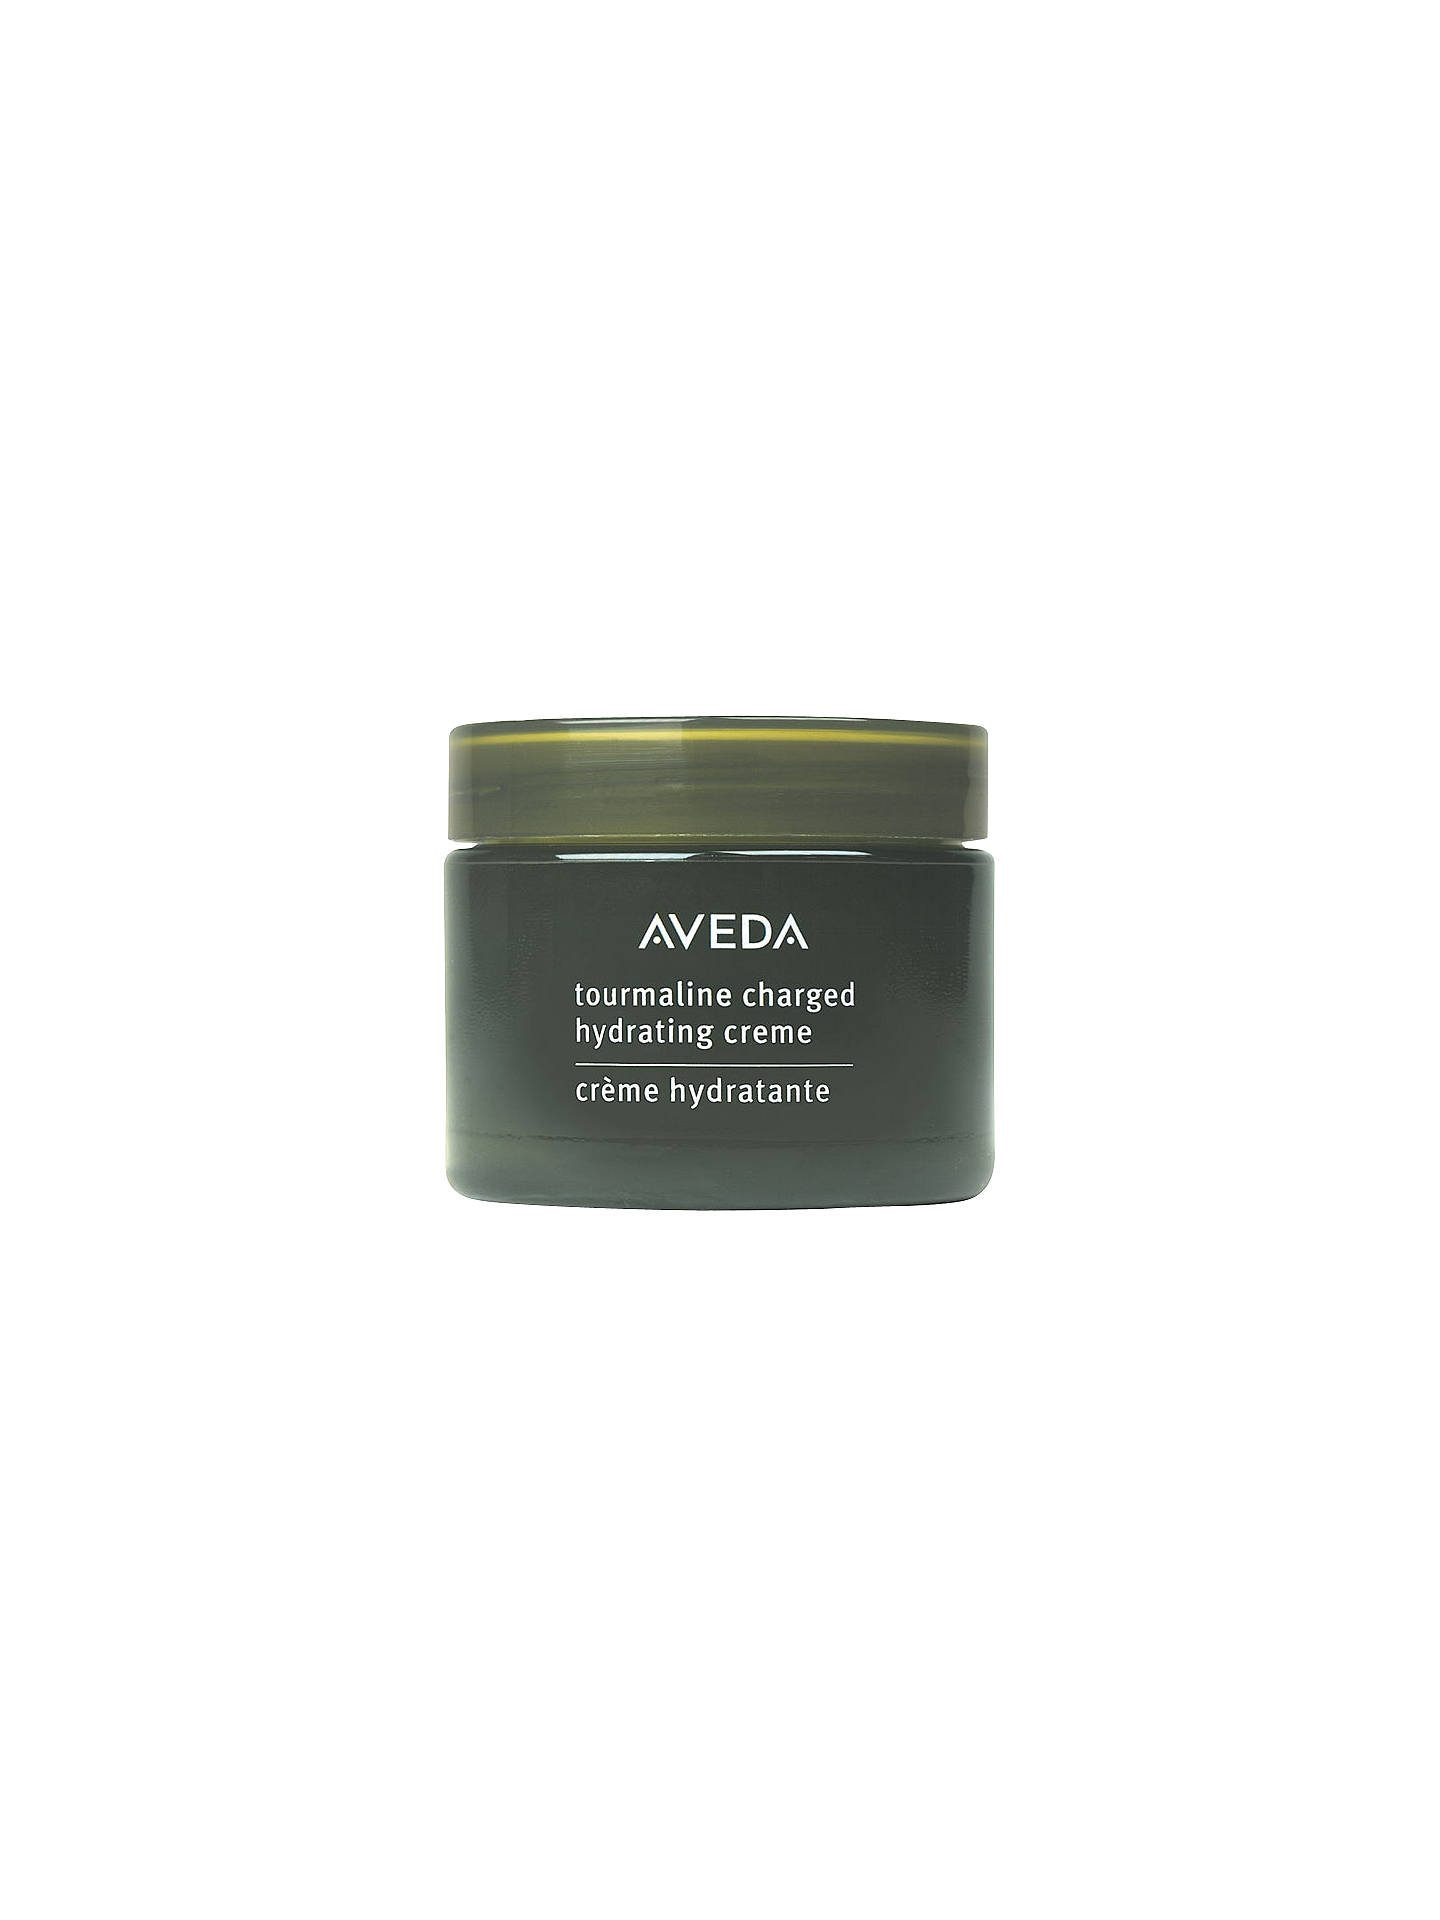 Buy AVEDA Tourmaline Charged Hydrating Crème, 50ml Online at johnlewis.com